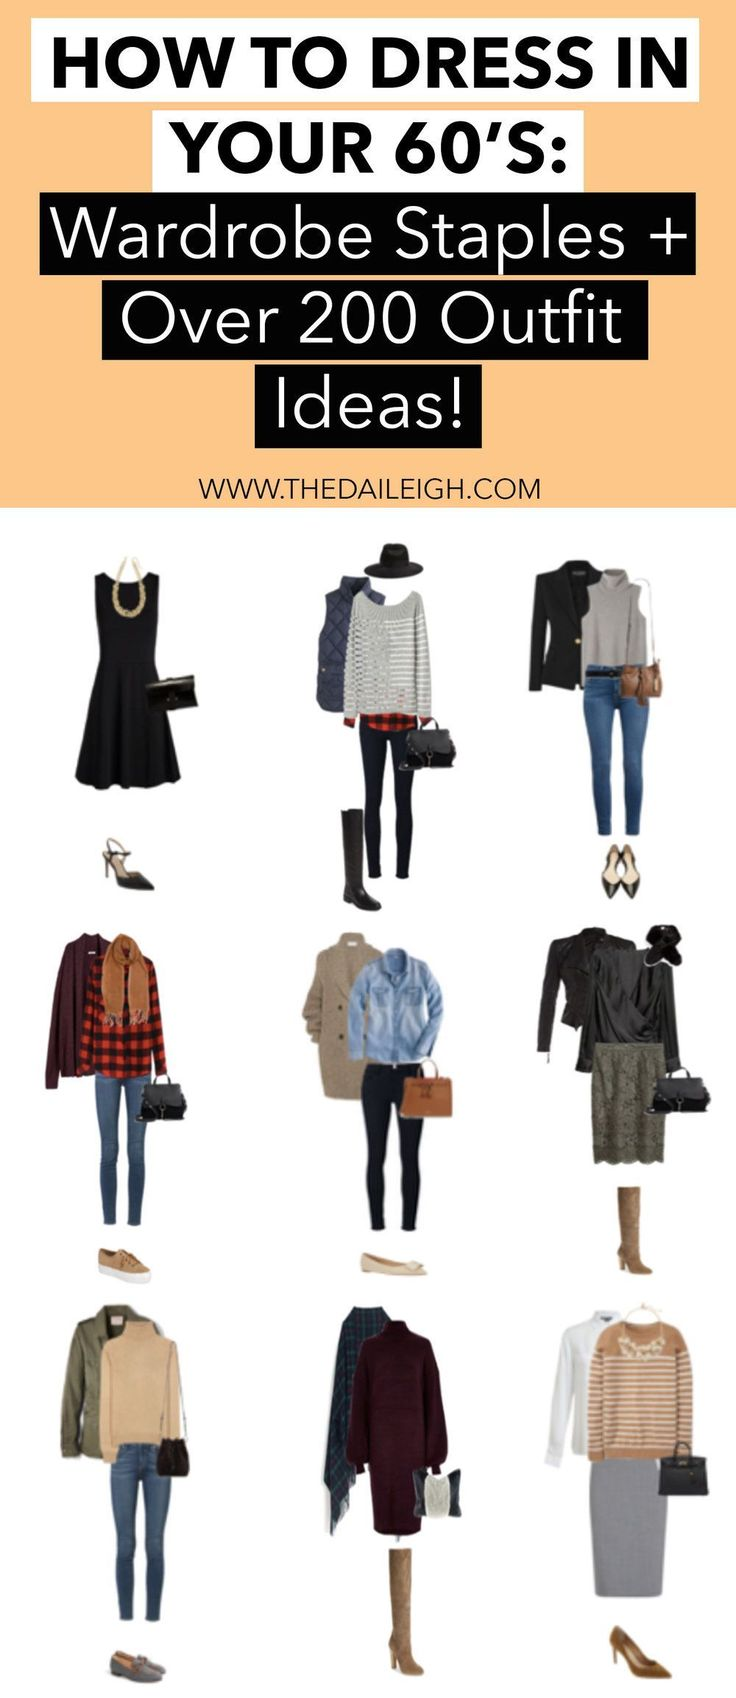 ABLE Leather Bags, Women's Jeans, Apparel & Shoes 69